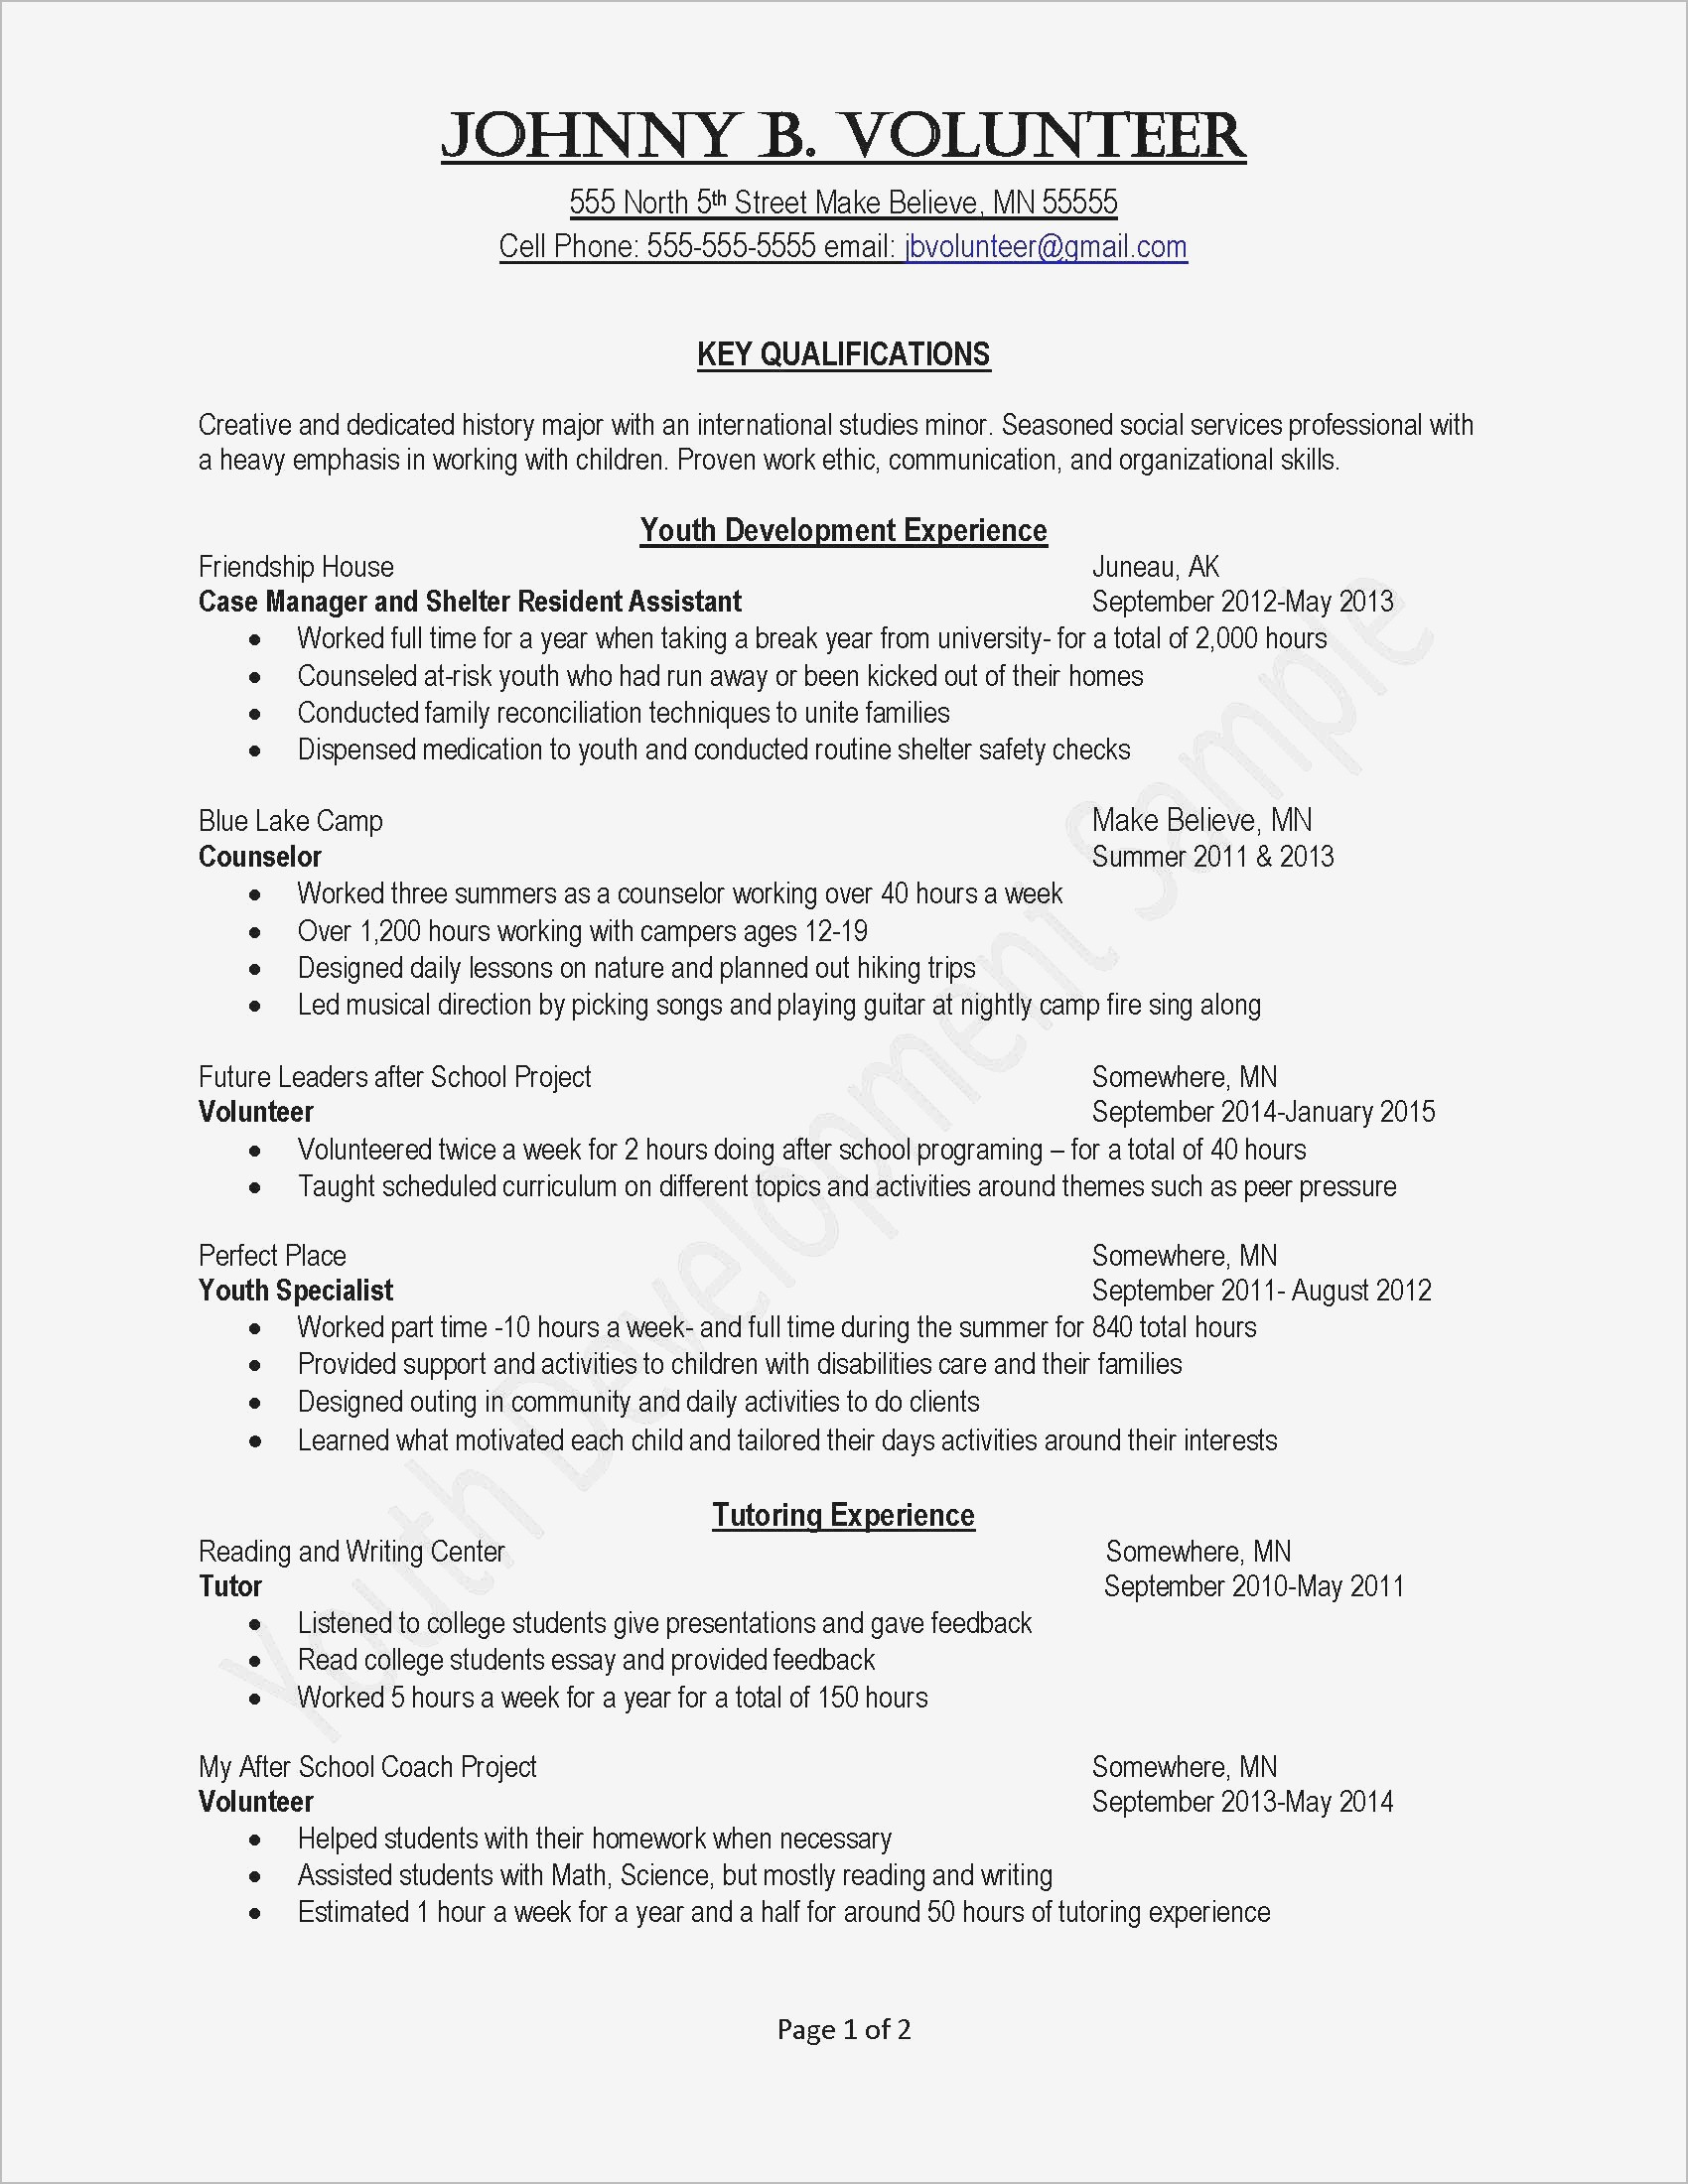 Company Cover Letter Template - Job Cover Letter Template Samples